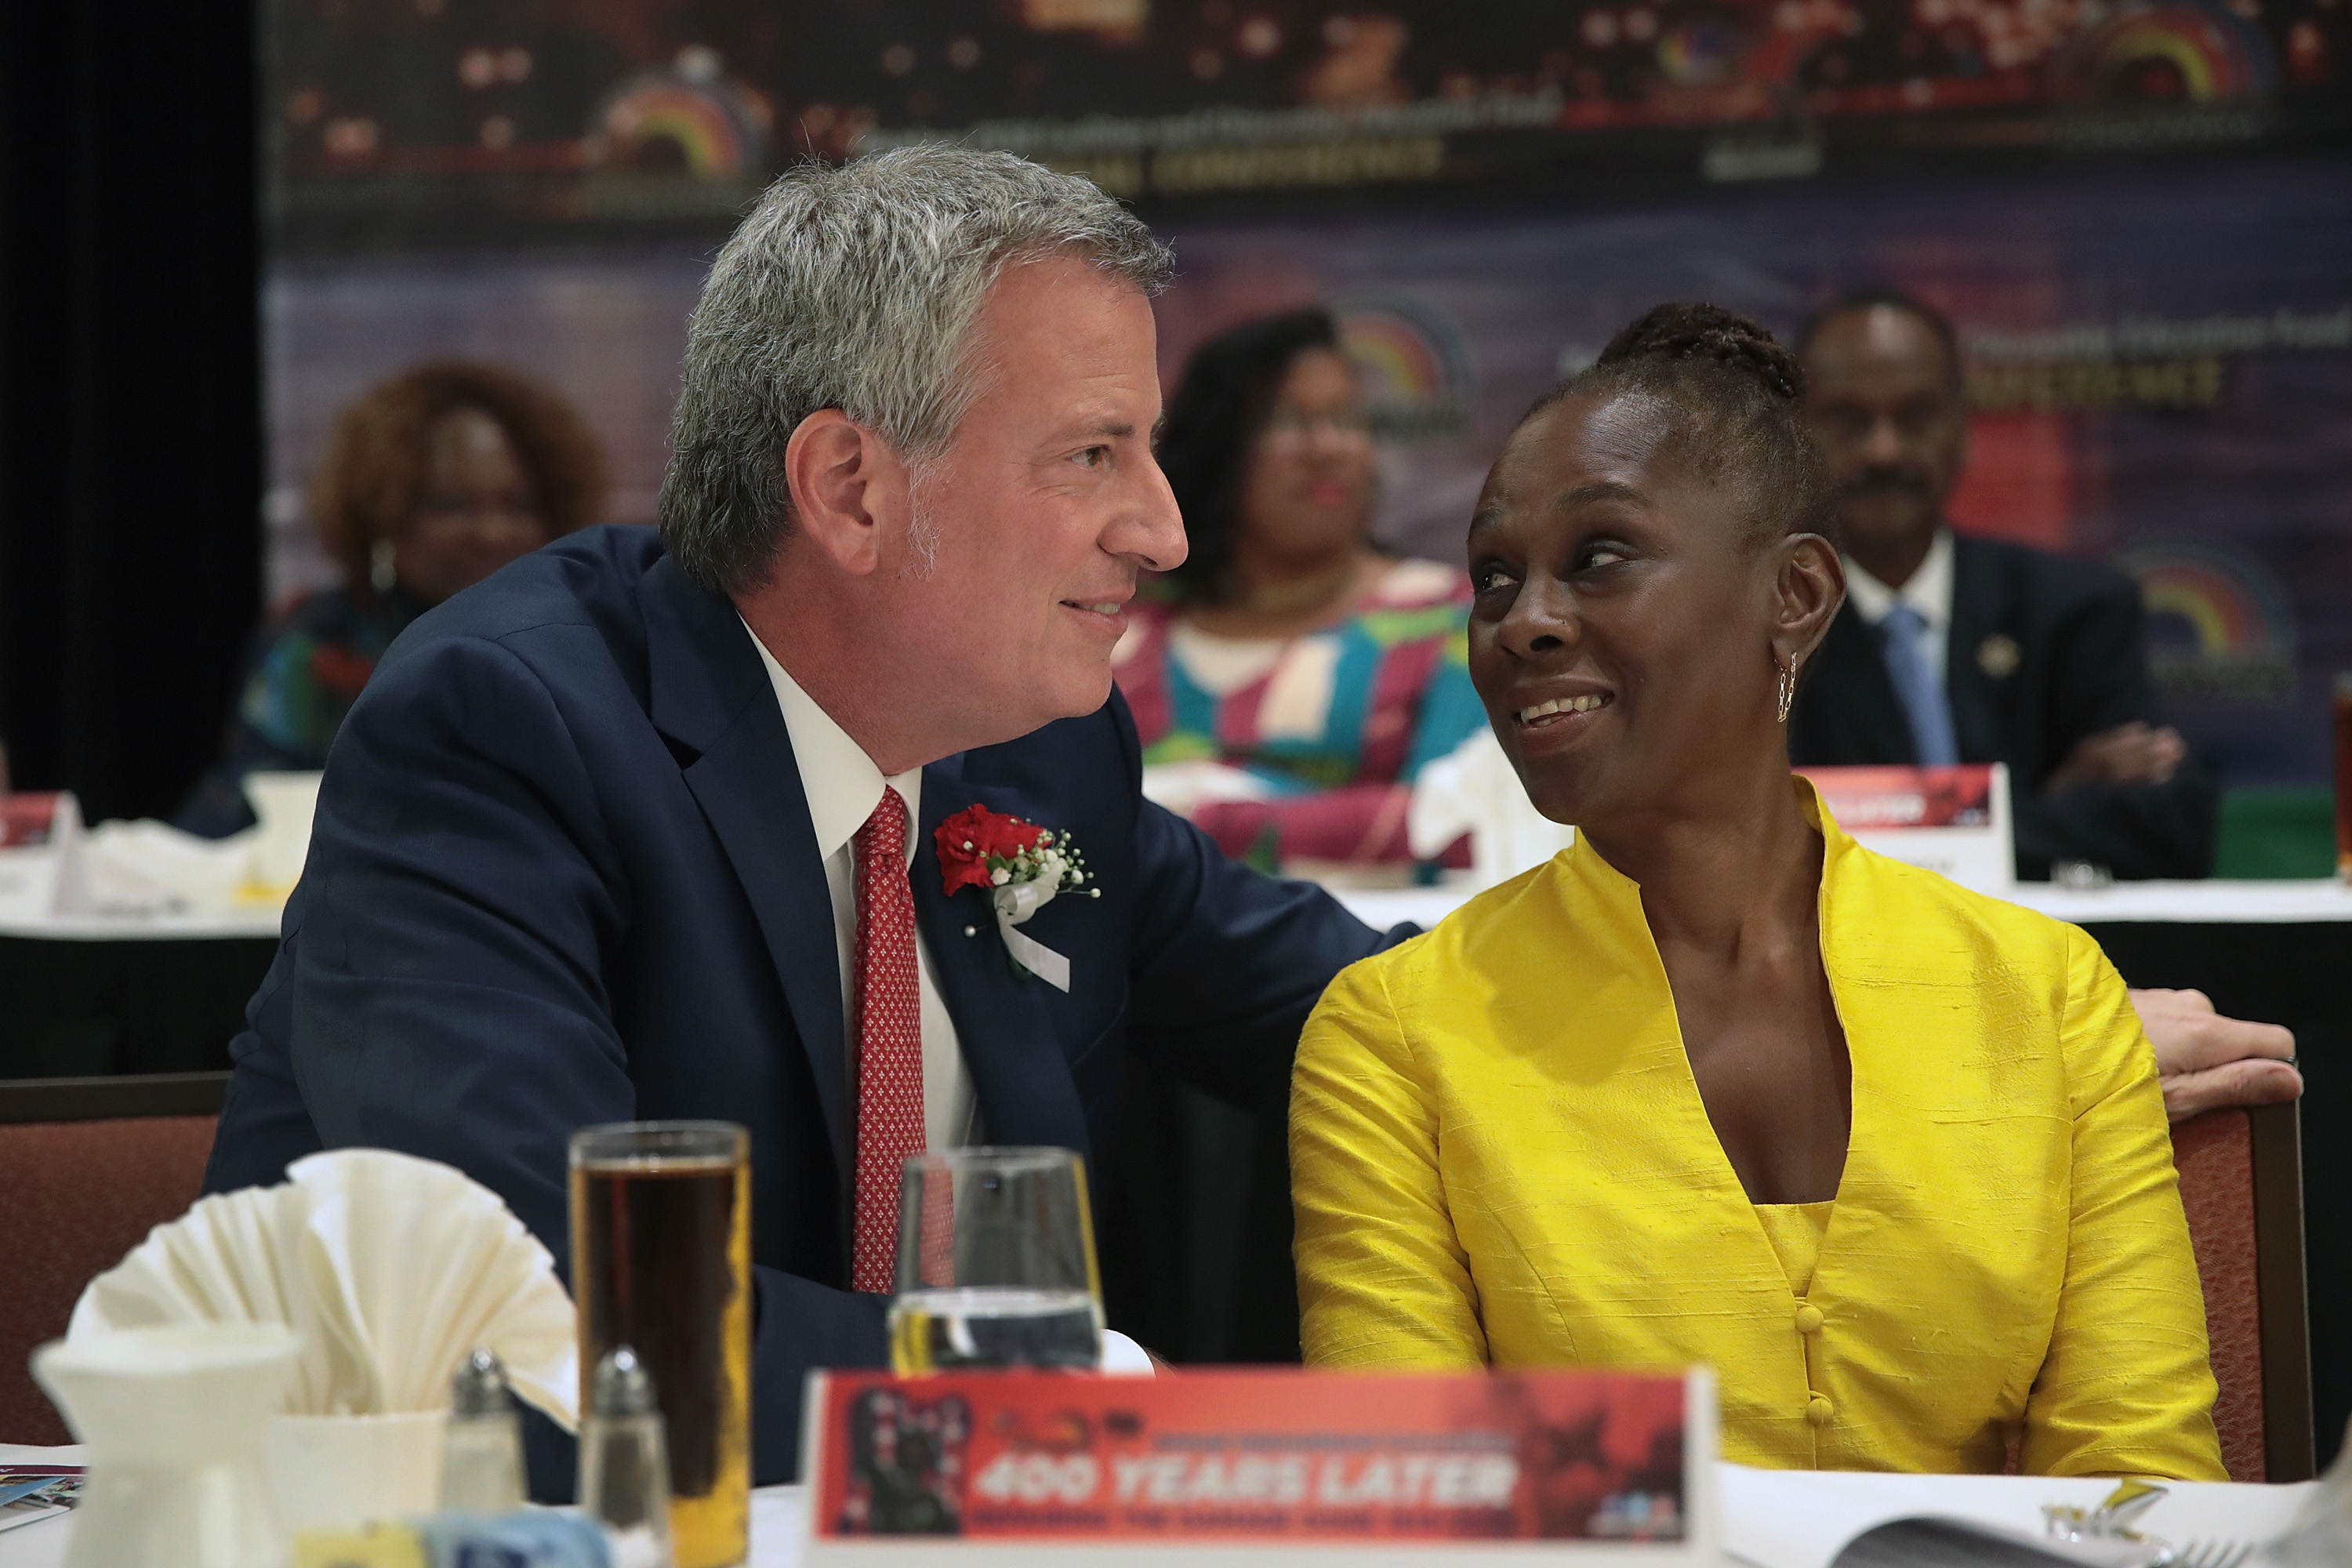 Democratic presidential candidate and New York City mayor Bill De Blasio speaks to his wife Chirlane McCray at the Rainbow PUSH Coalition Annual International Convention on July 1, 2019 in Chicago, Illinois. (Scott Olson/Getty Images)